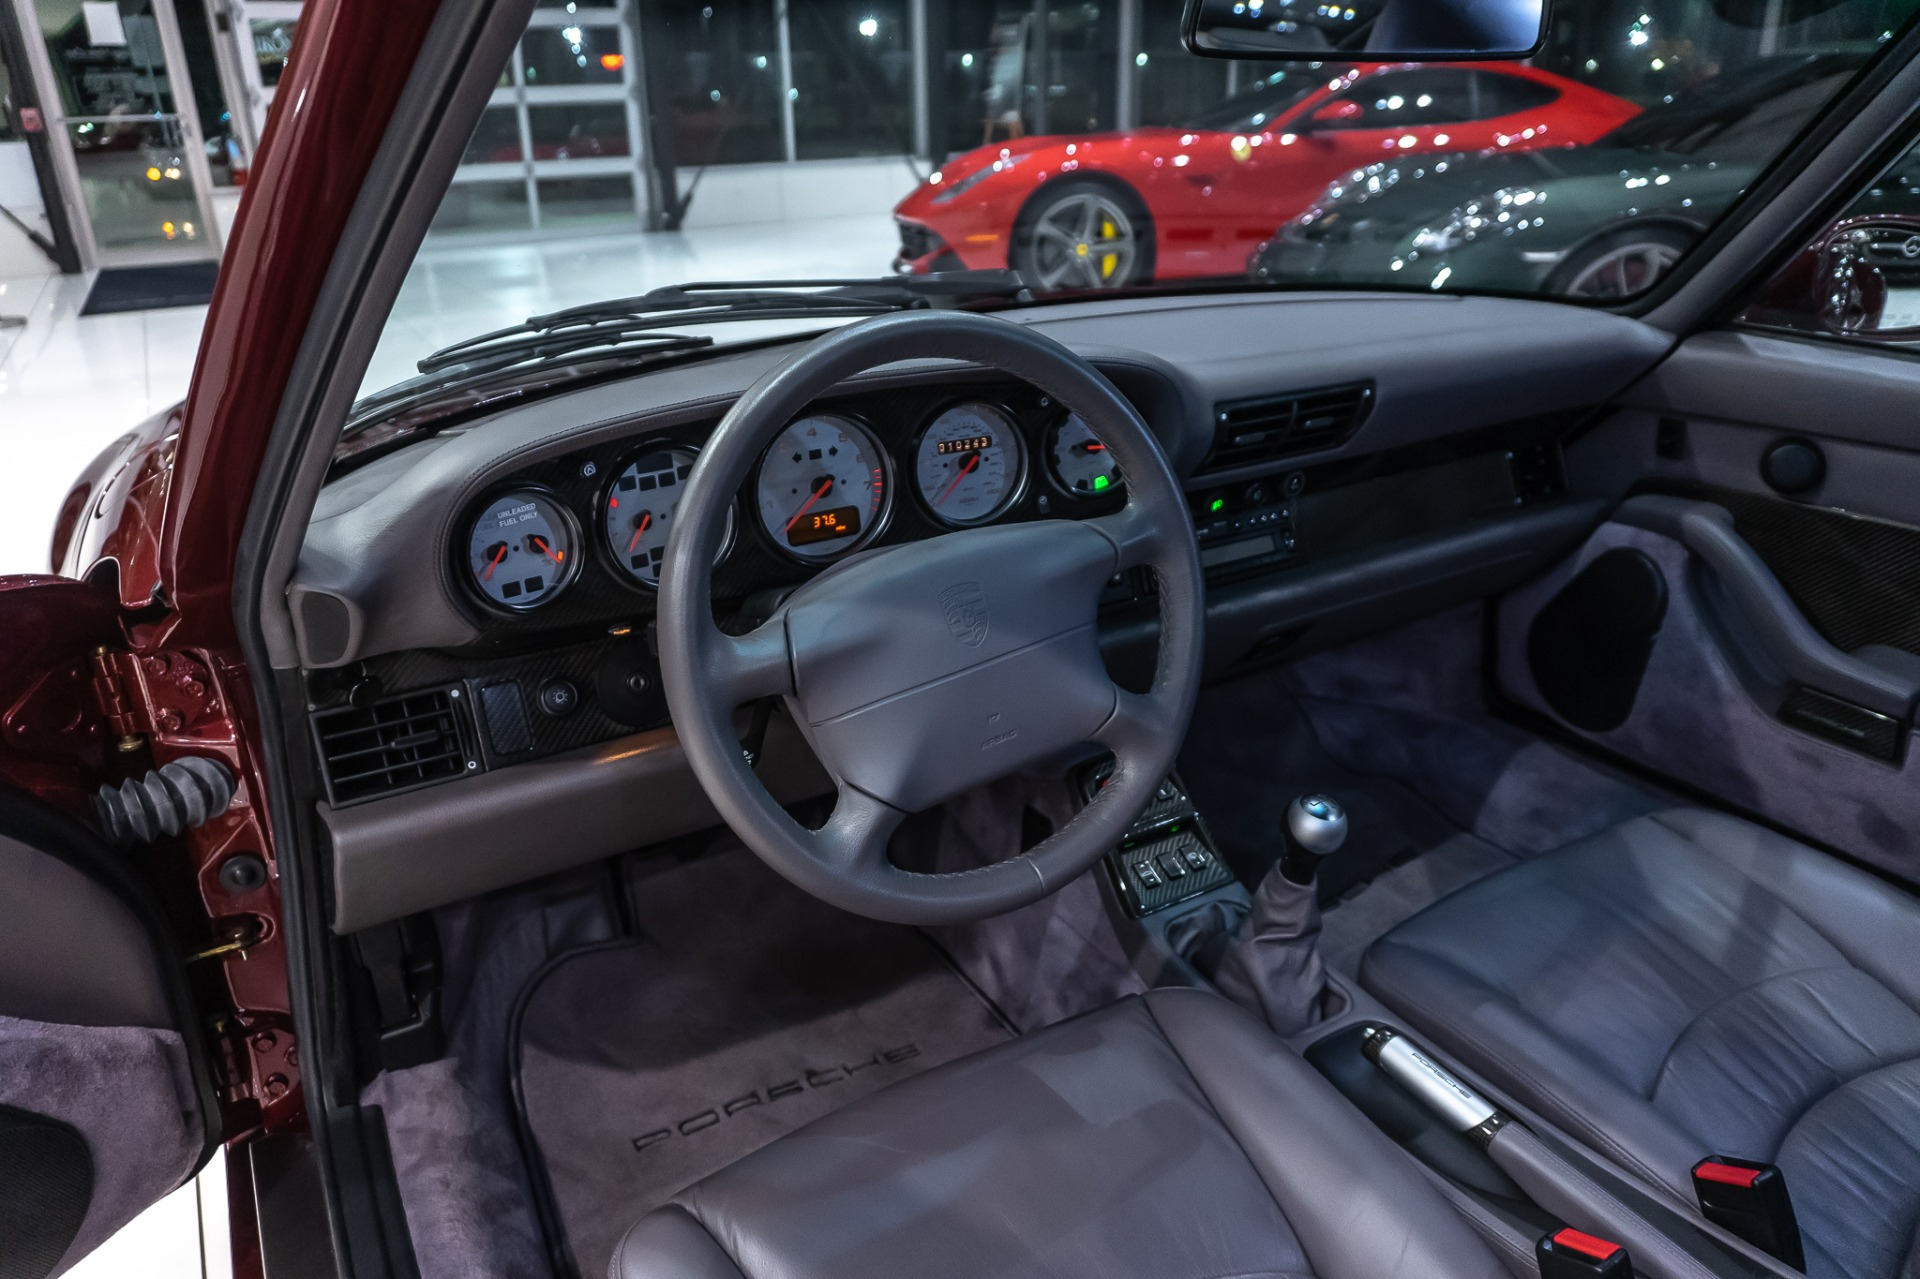 Used-1997-Porsche-993-38L-Twin-Plug-Turbo-Coupe-1-of-24-PRODUCED-Fully-Documented-ANDIAL-Build-Perfect